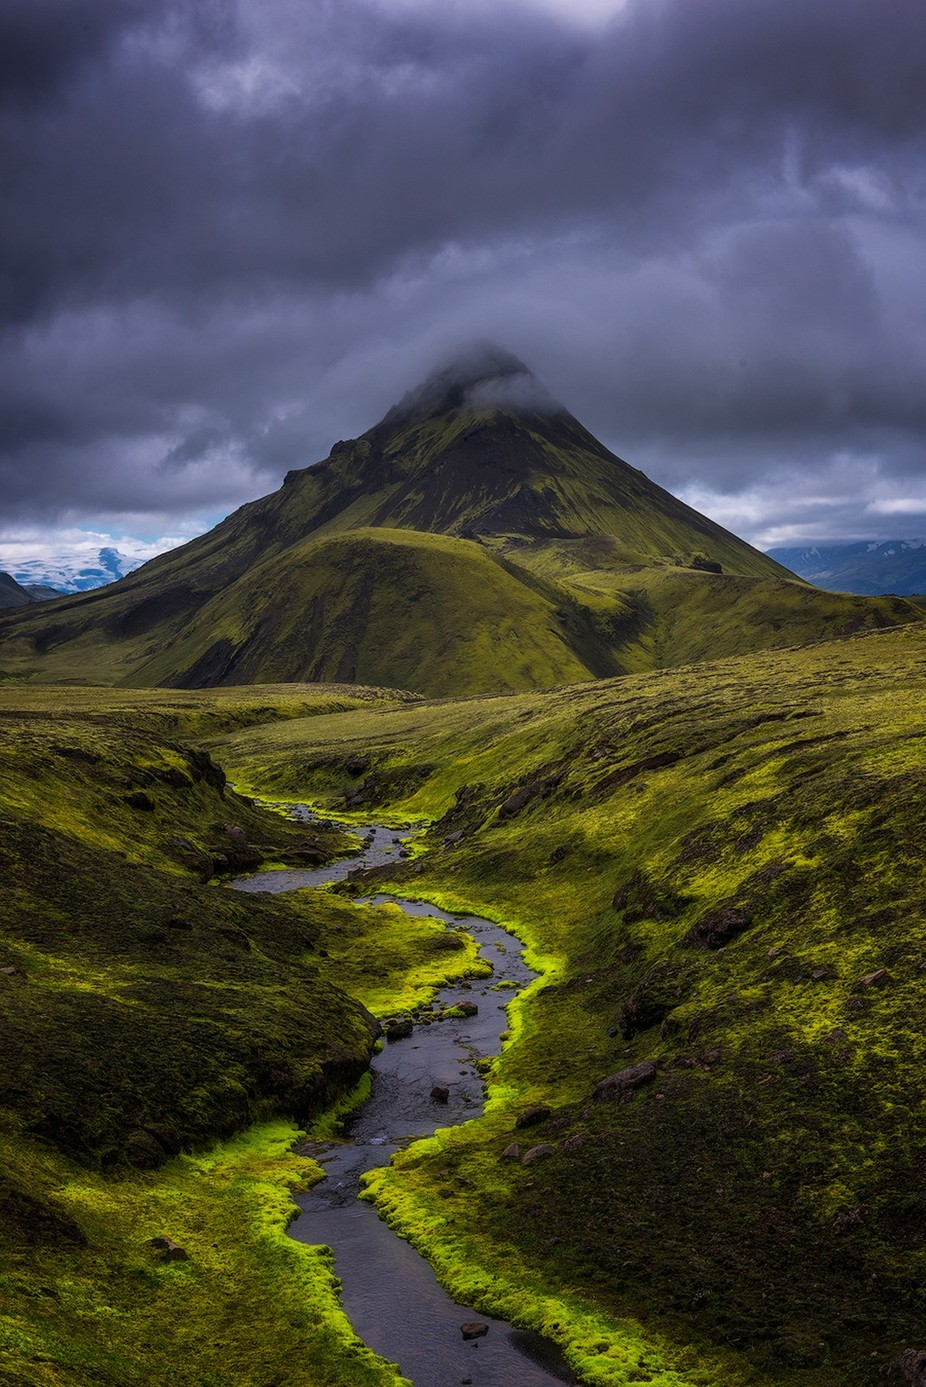 Icelandic Highlands by Tor-Ivar - Depth In Nature Photo Contest